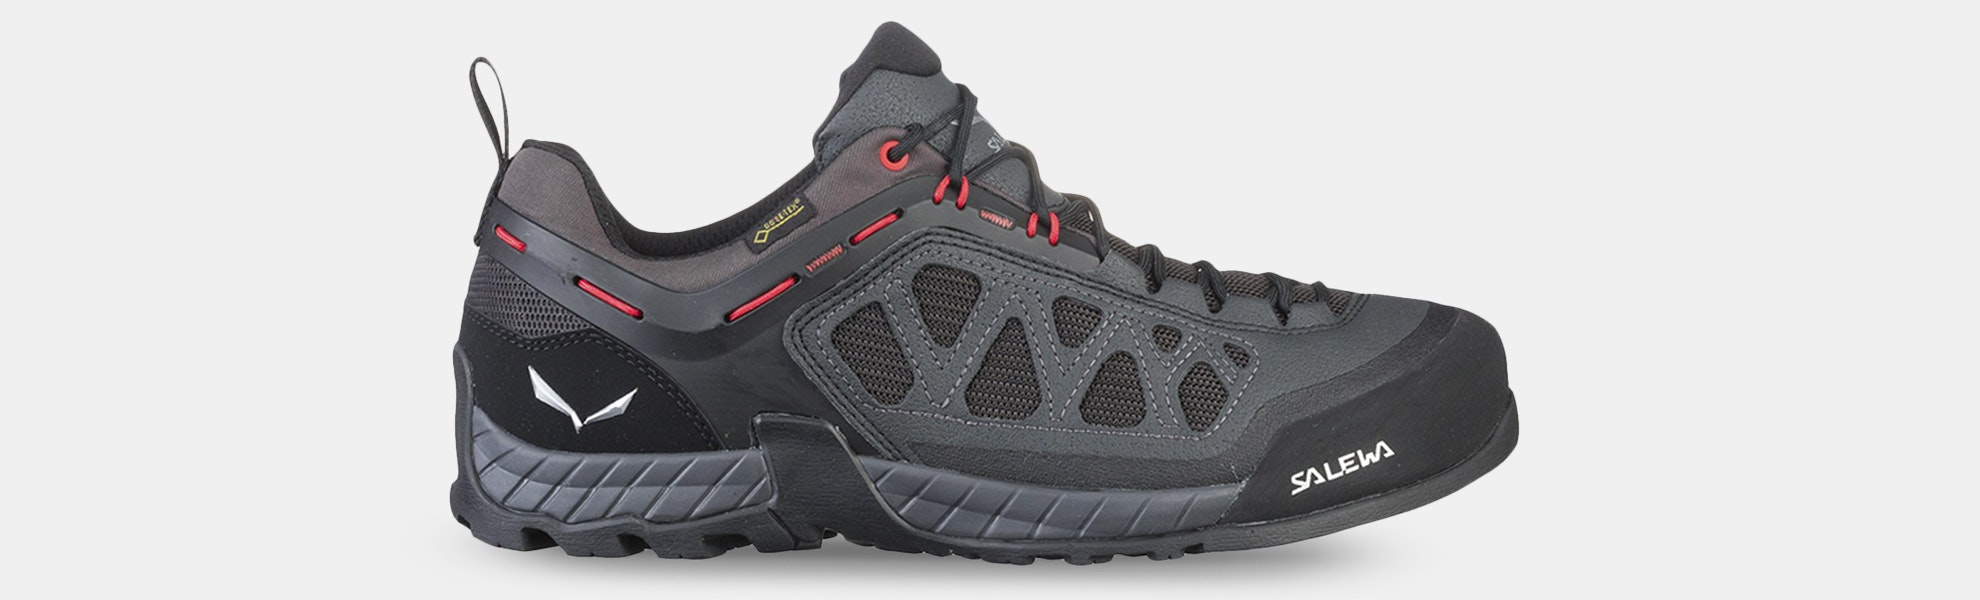 Salewa Men's Firetail 3 GTX Approach Shoe